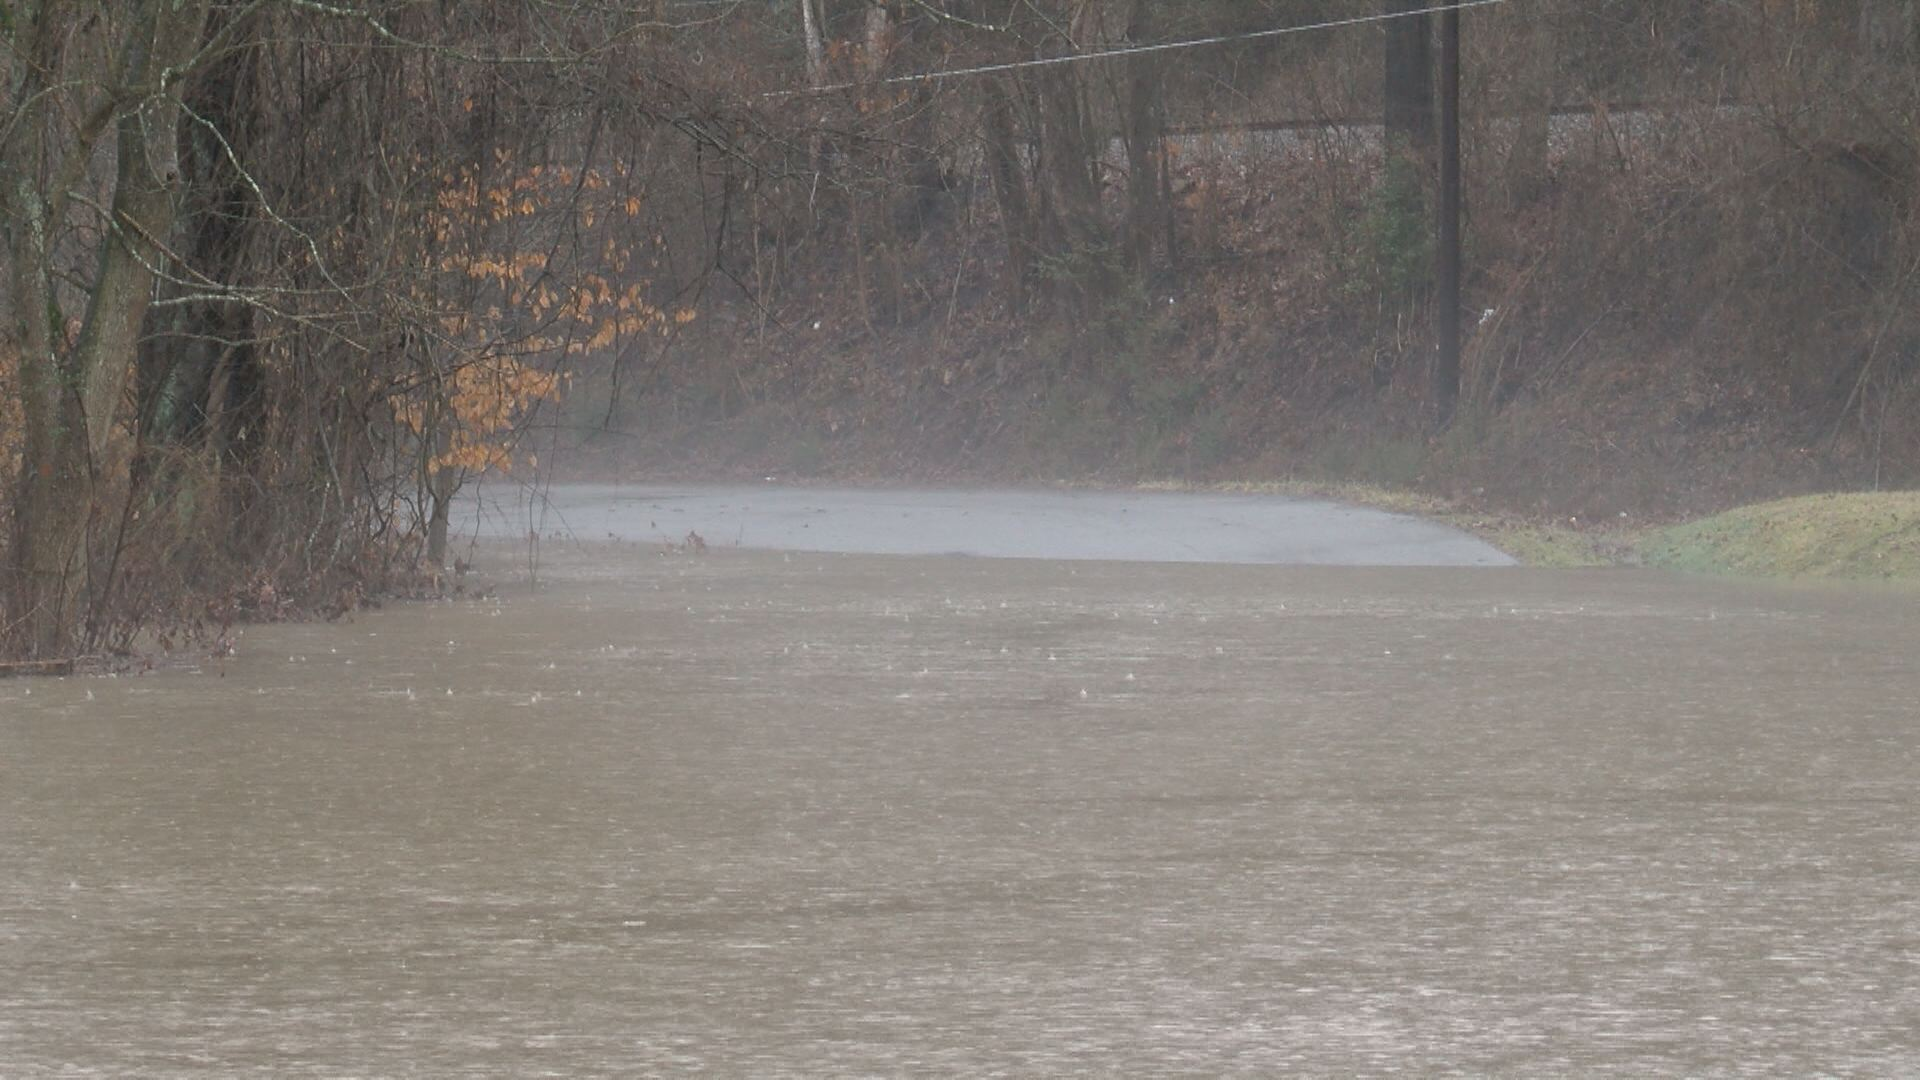 An aviation road in Big Stone Gap covered in water<p></p>